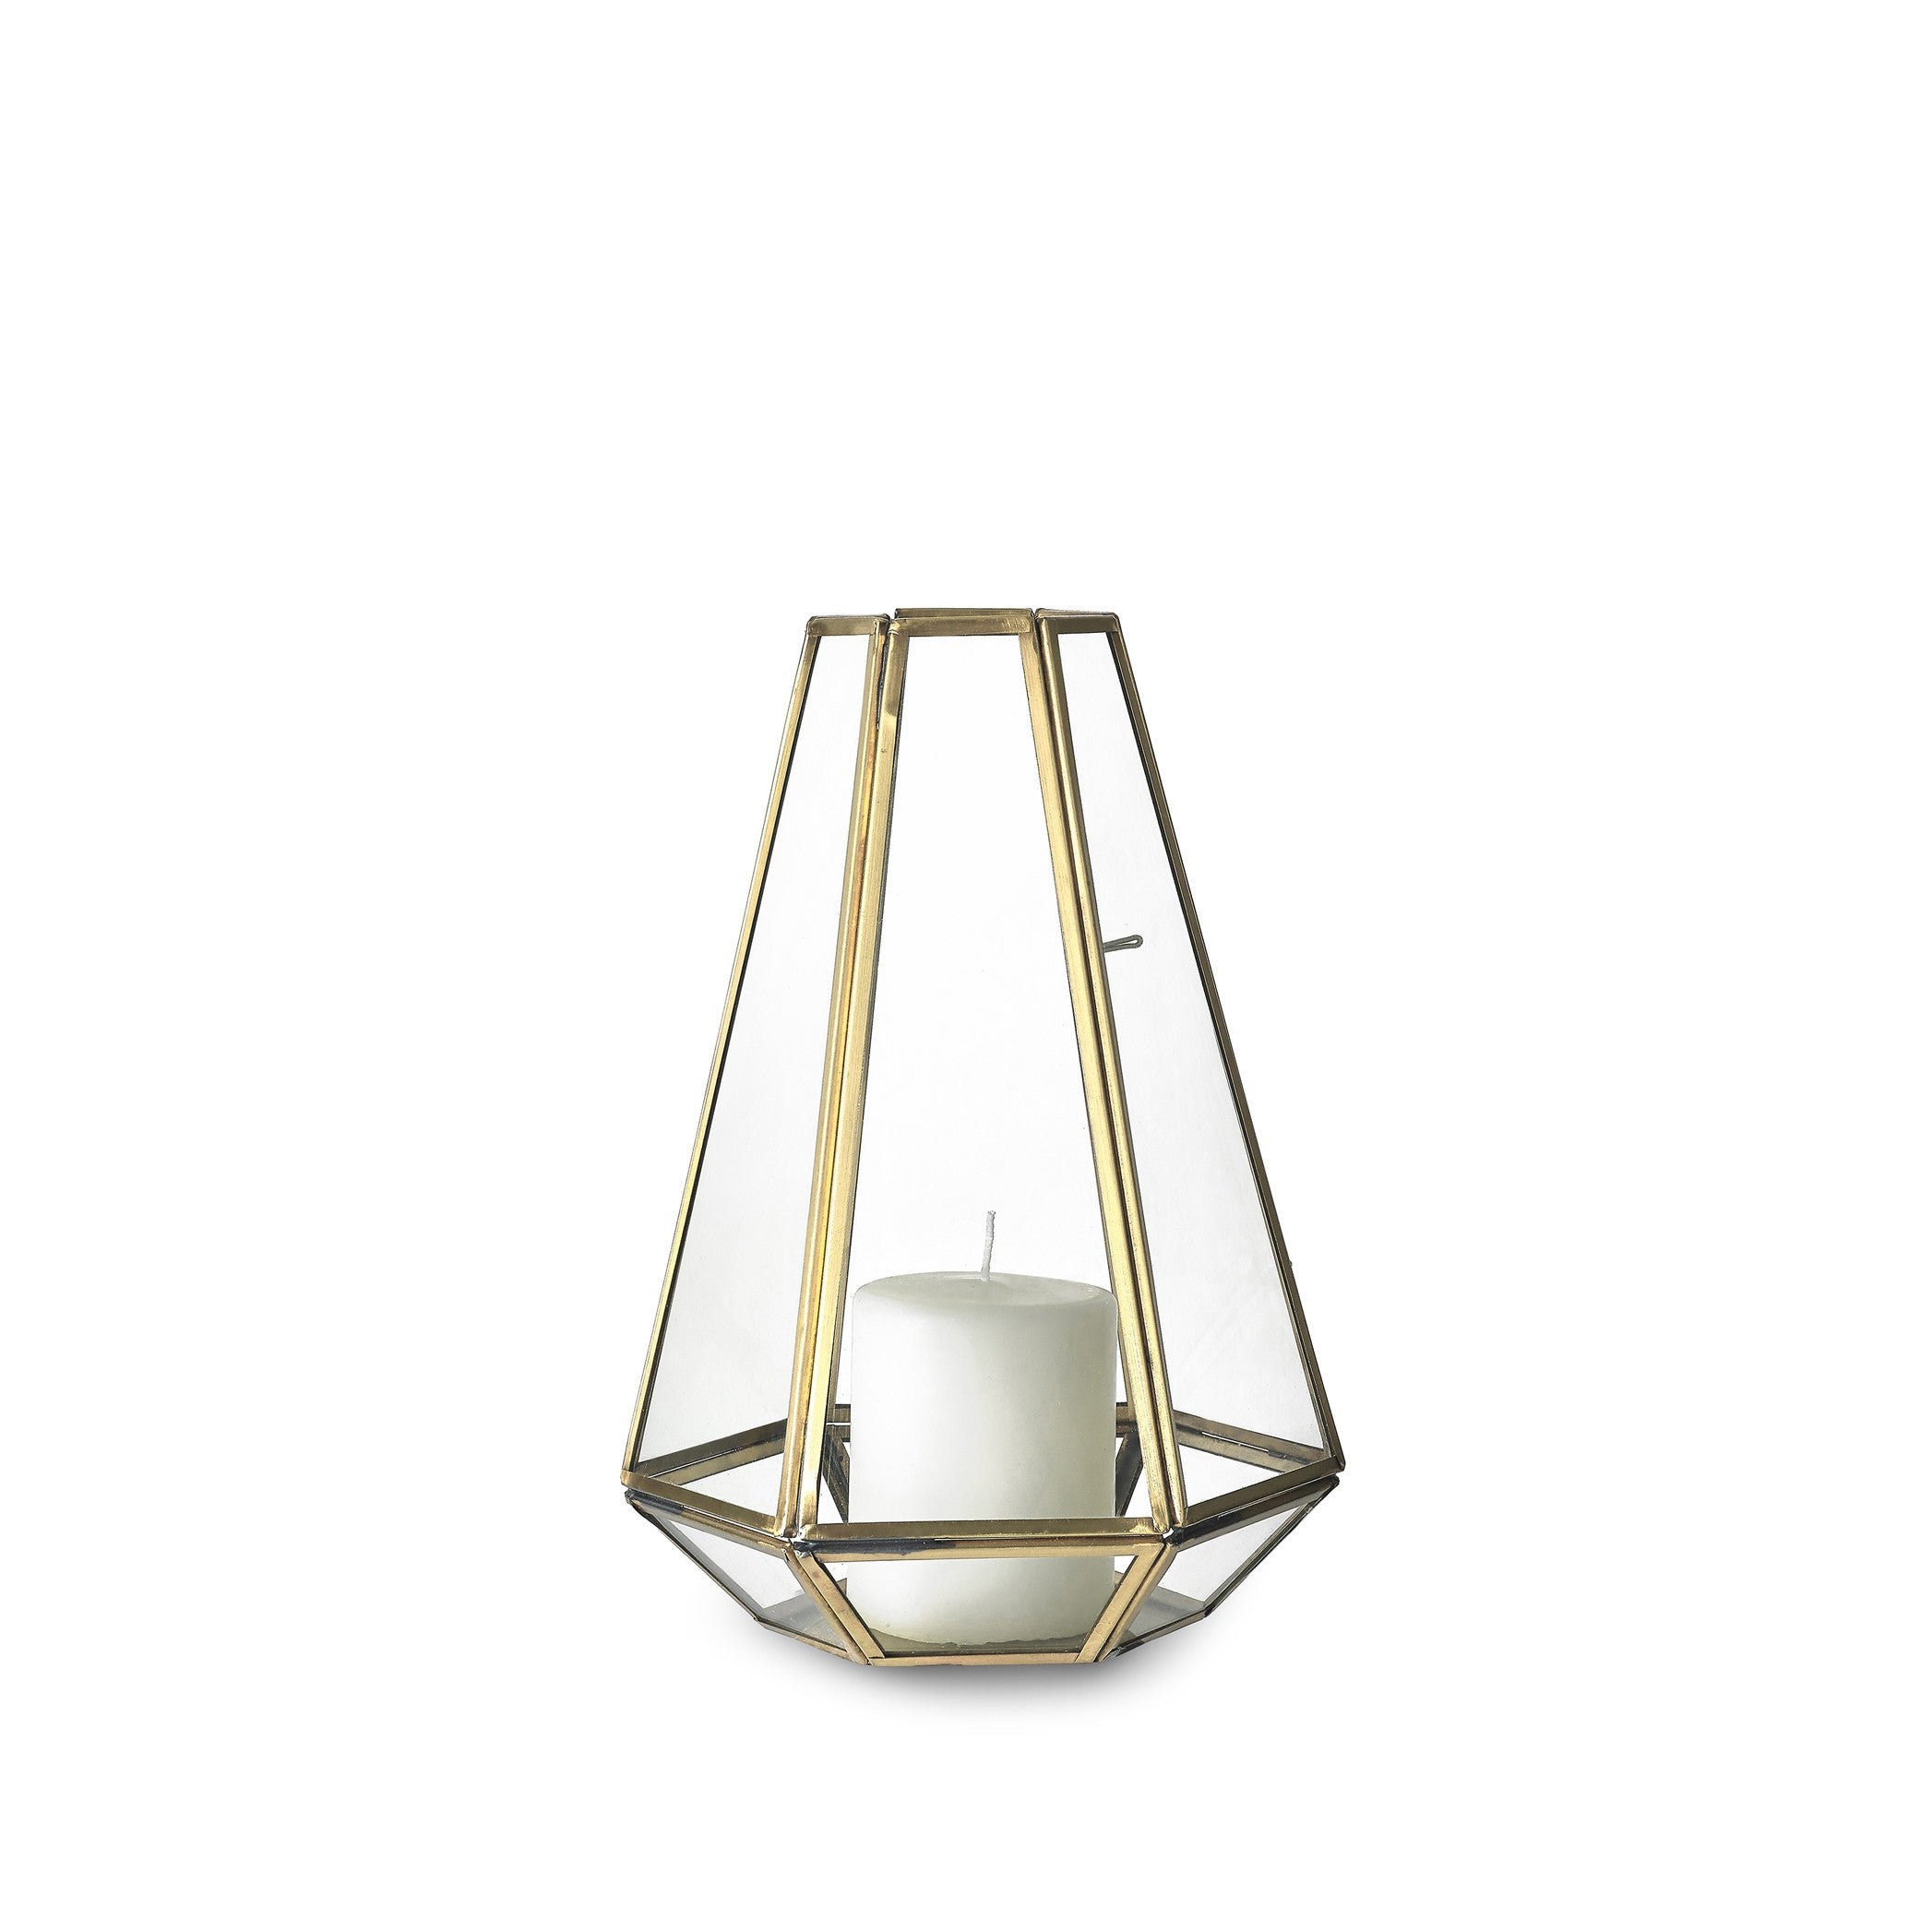 Framed Hexagonal Lantern in Brass, Small